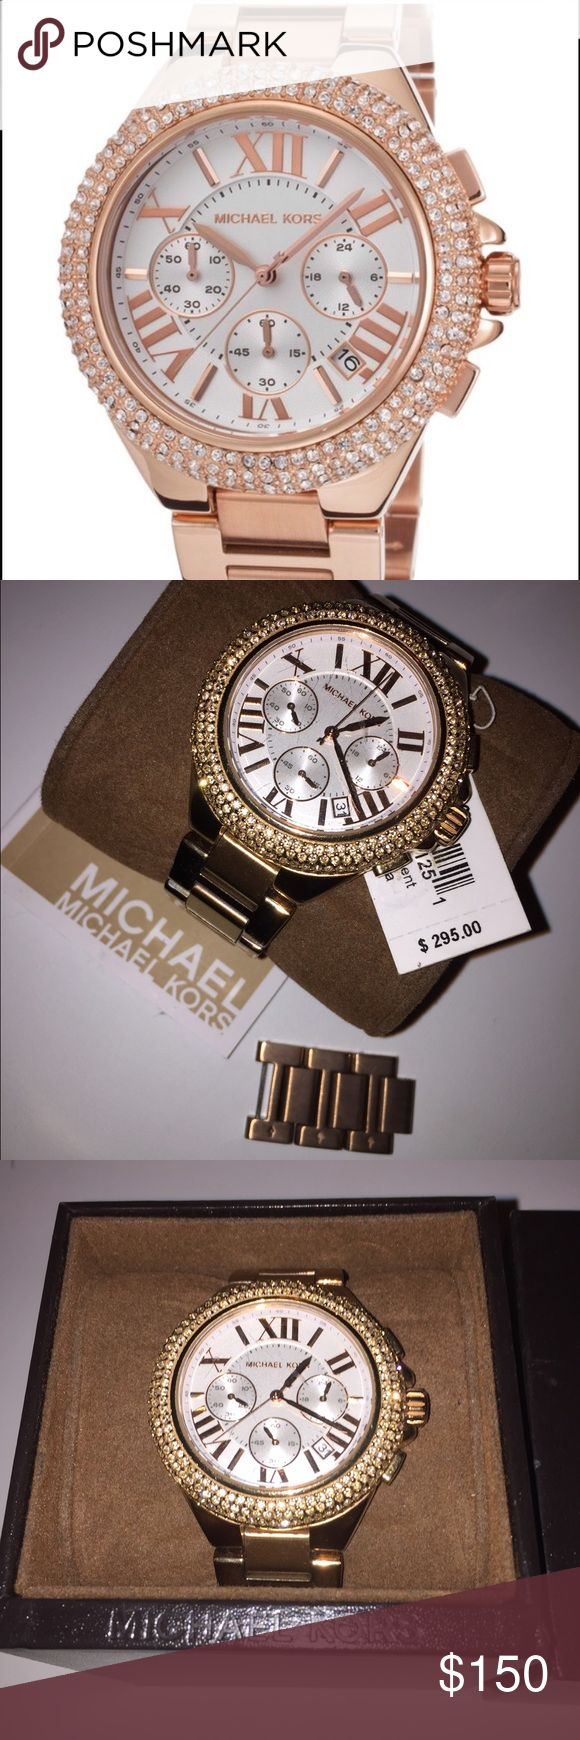 Michael Kors Rose Gold Watch Women's/Ladies Michael Kors Rose rose gold watch for sale, no trade🙅🏼 A few very small scratches but hardly noticeable and the original links are in the box for size adjustments. All stones(diamonds) are intact!! I haven't worn it in a long time so am looking to sell, still have original tag/box/links. Originally bought for $295. Michael Kors Jewelry Bracelets